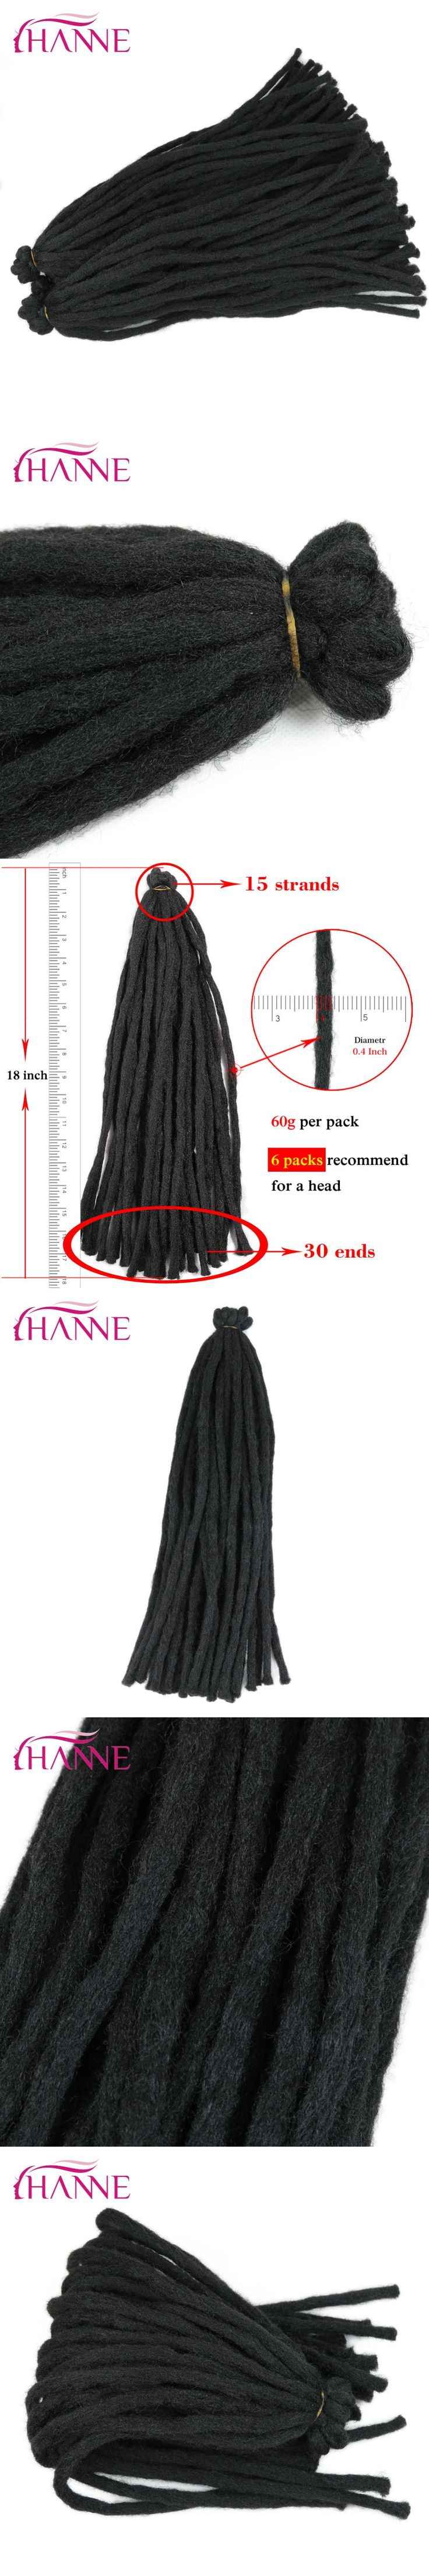 HANNE 18inch 65g Crochet Braids Black Dreadlocks High Temperature Synthetic Hair Extensions For Men/Black Women 15strands/pack